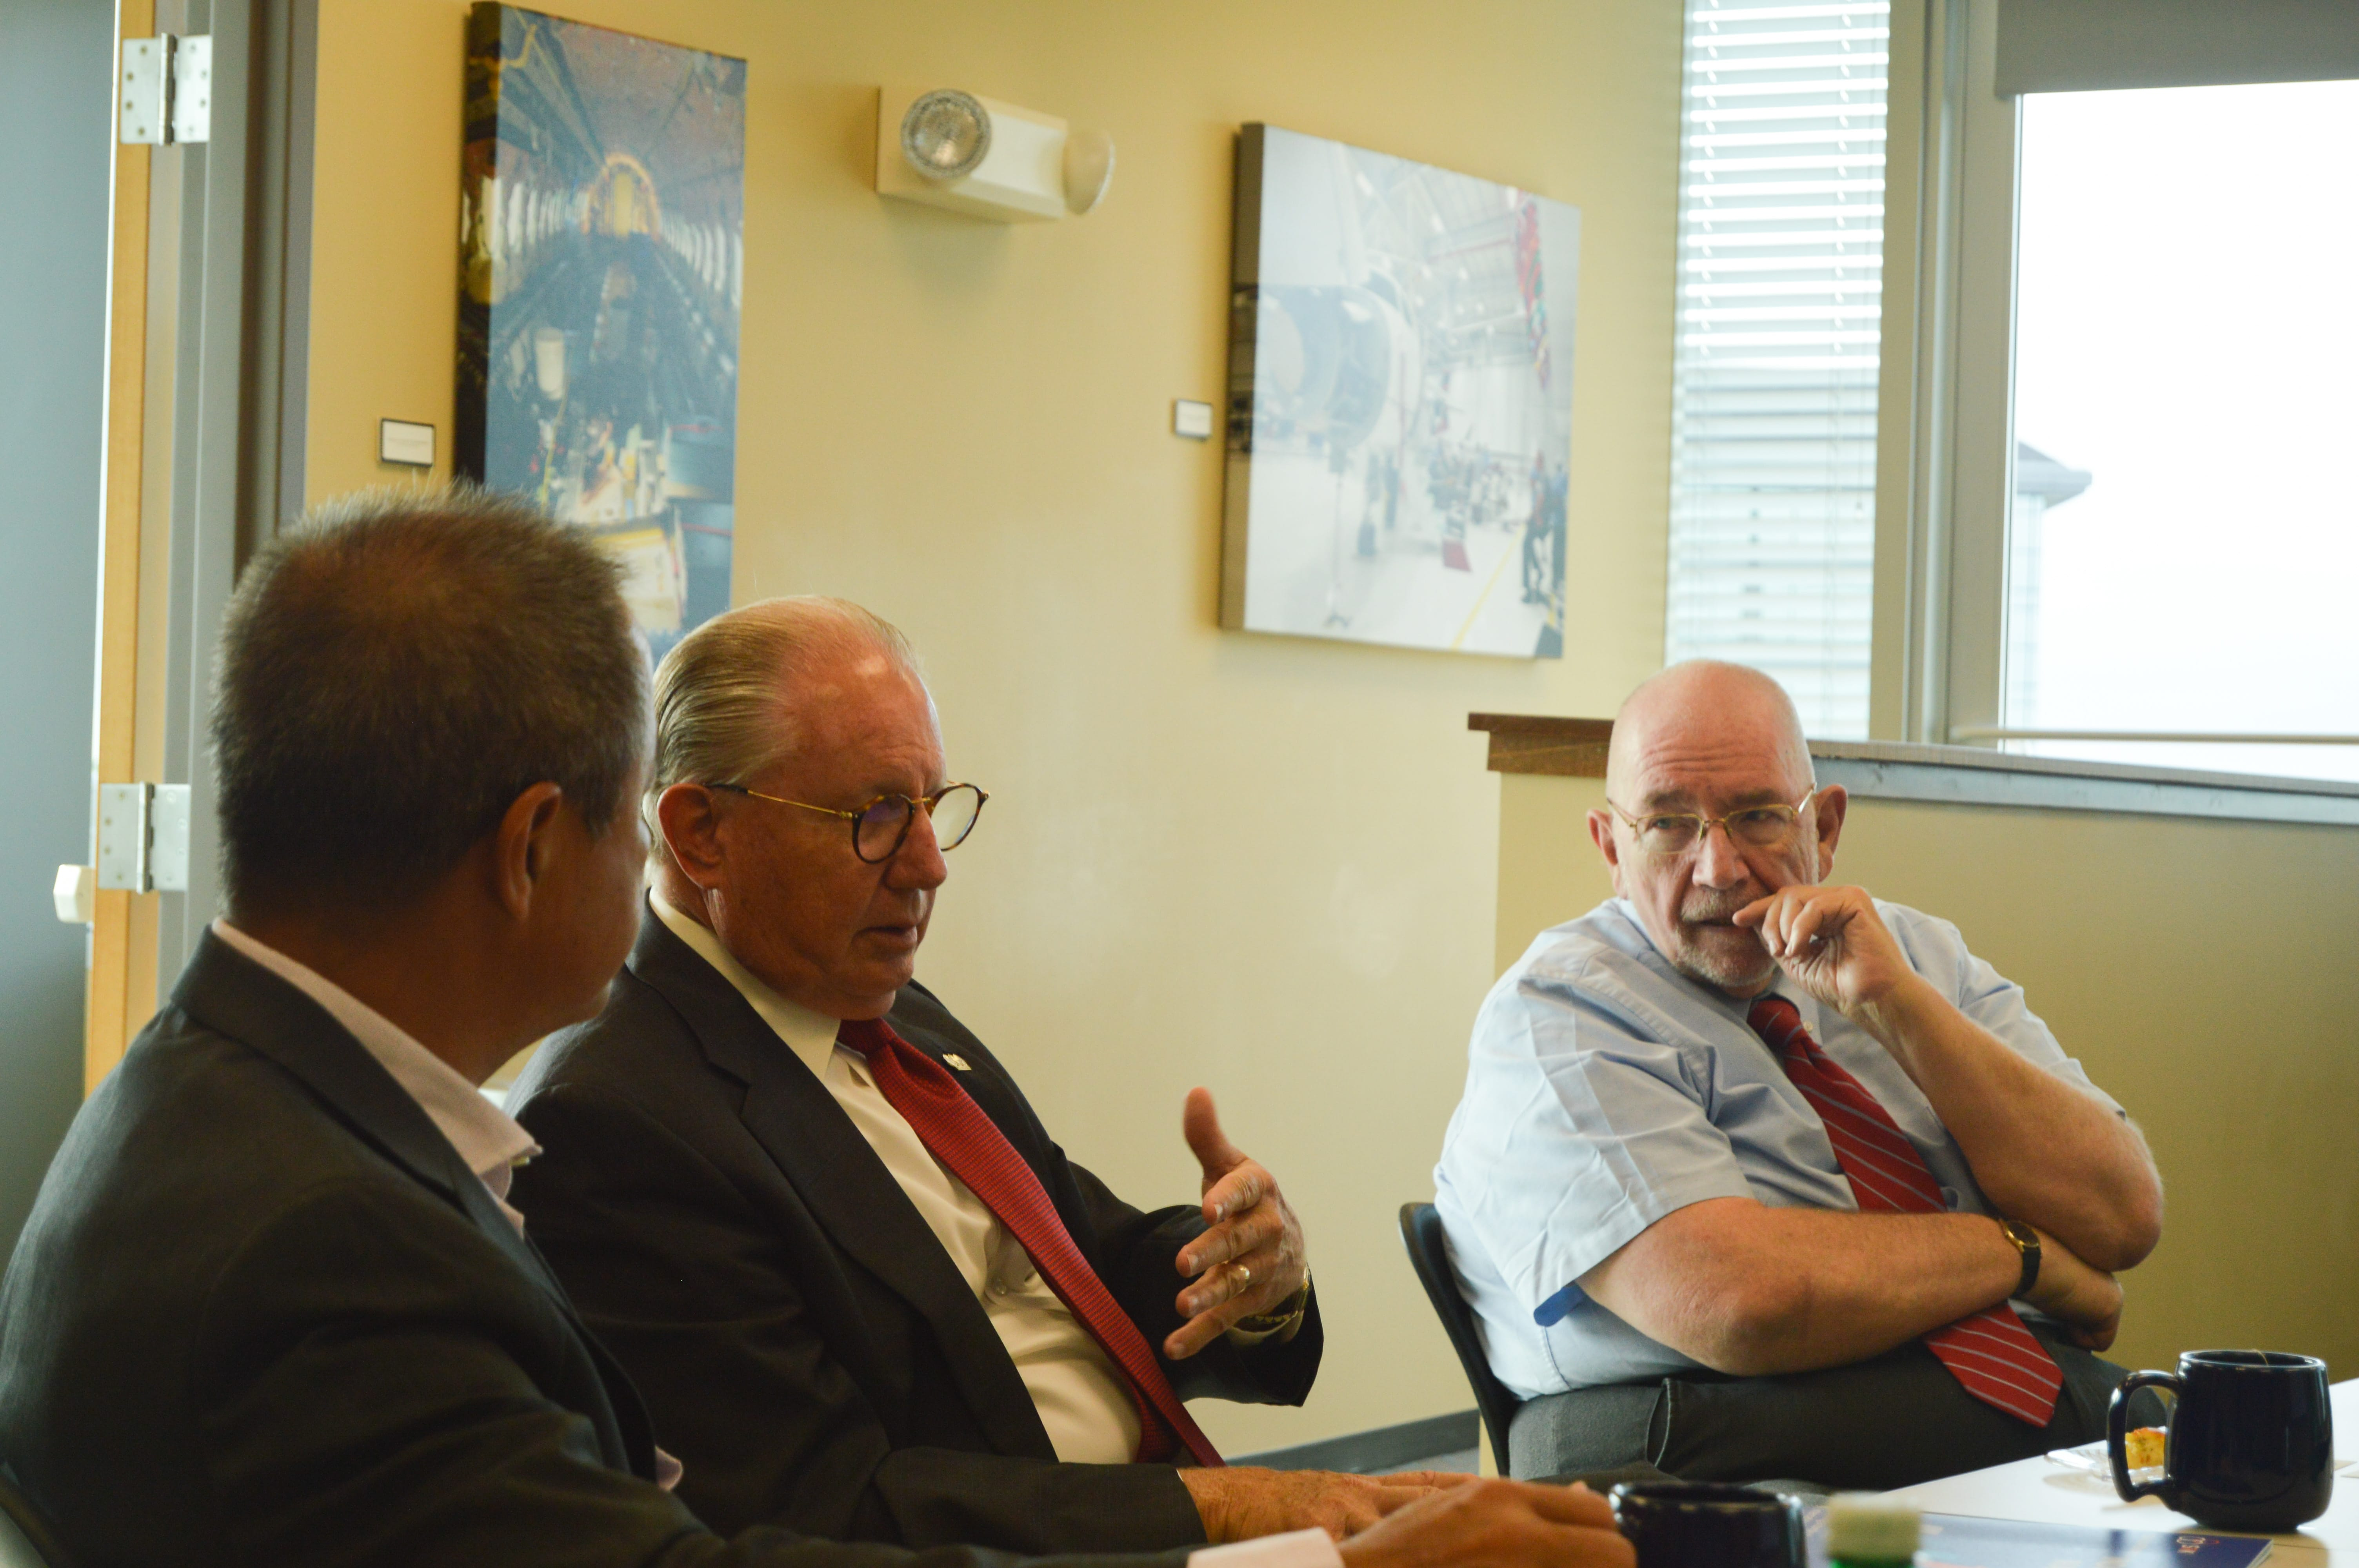 Four representatives of IBG Global, an international association of business consulting firms, met with the World Trade Center Arkansas (WTCAR) team Monday morning in Rogers